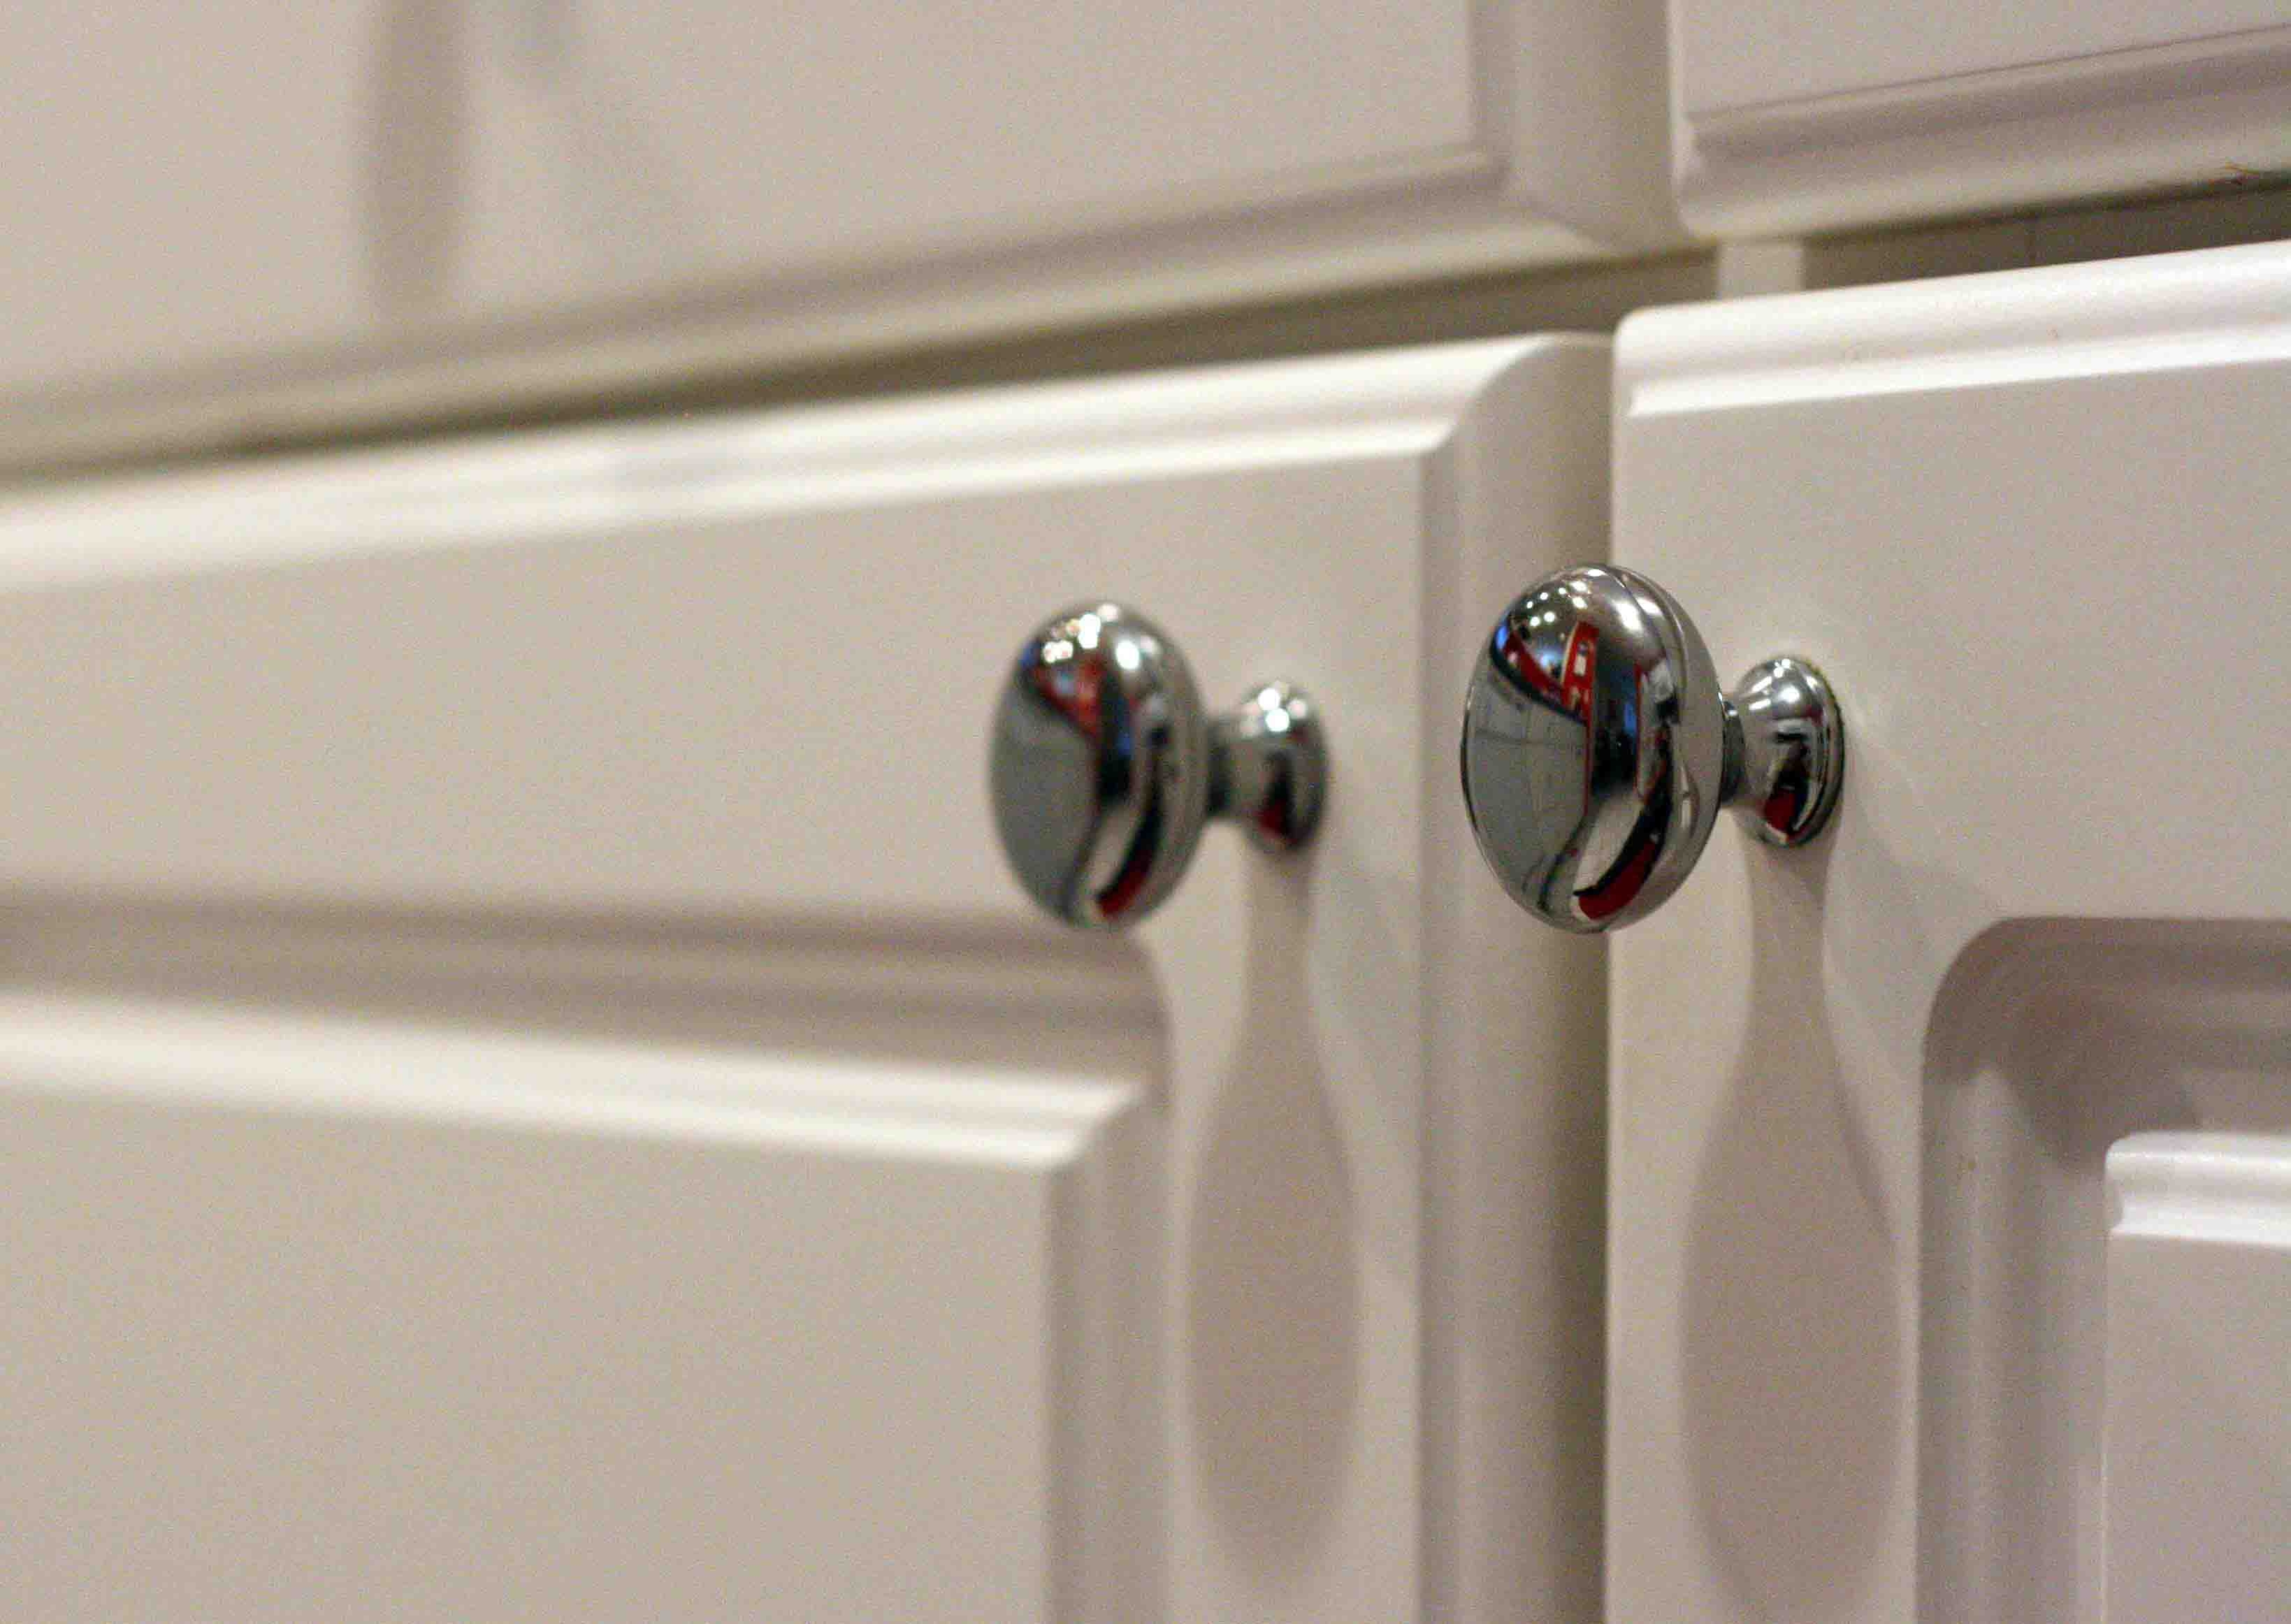 Bathroom Cupboard Door Handles